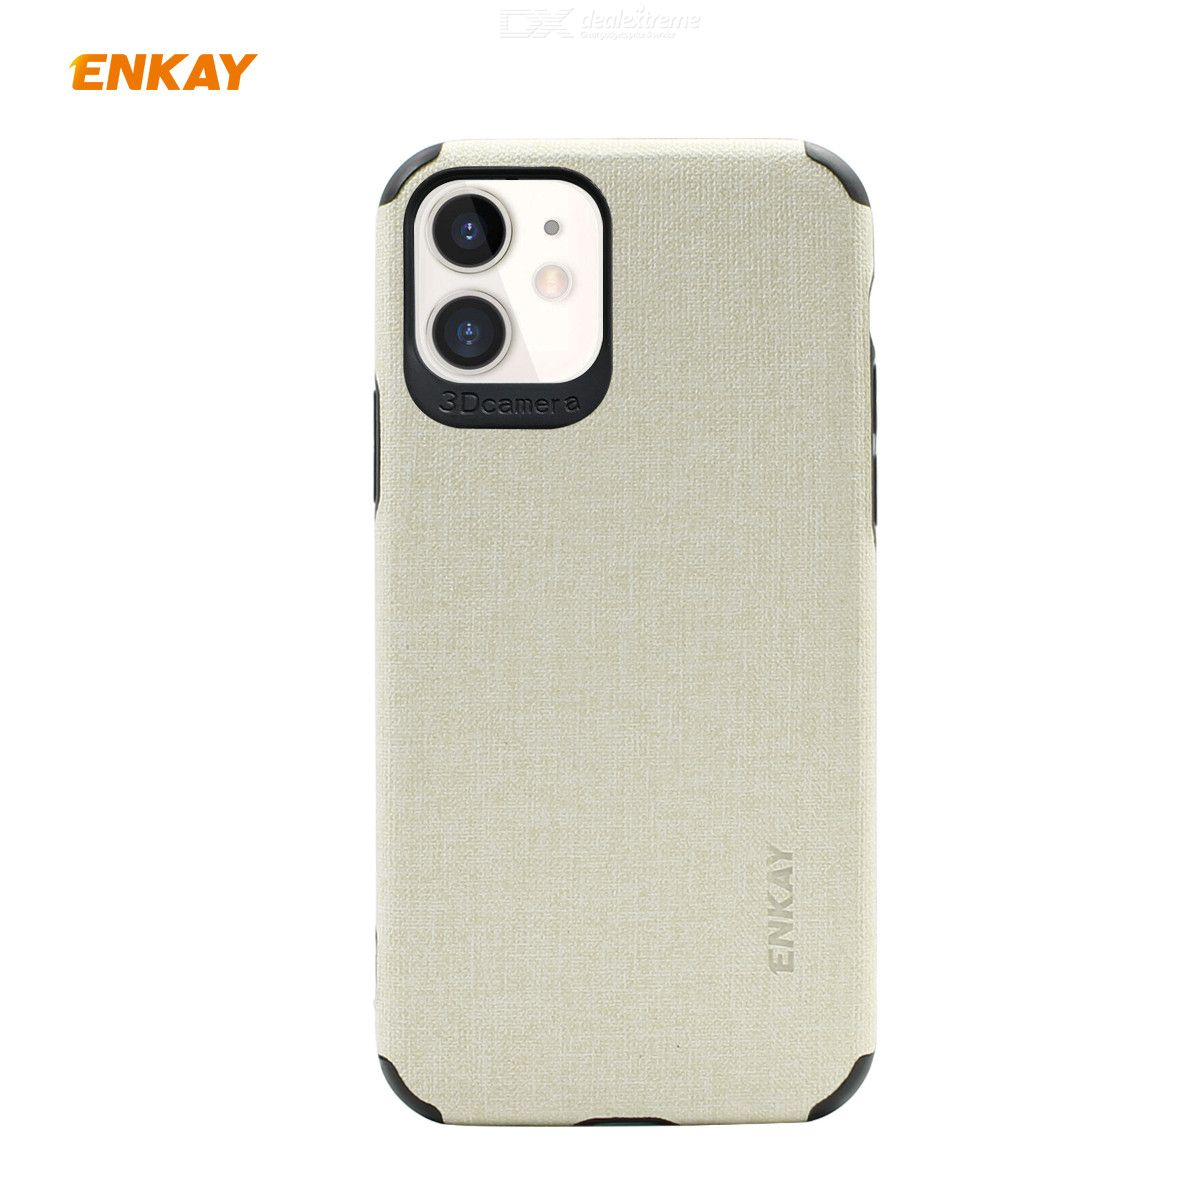 ENKAY Hat-Prince PU + TPU Cotton Linen Pattern Back Cover Soft Phone Case For iPhone 11